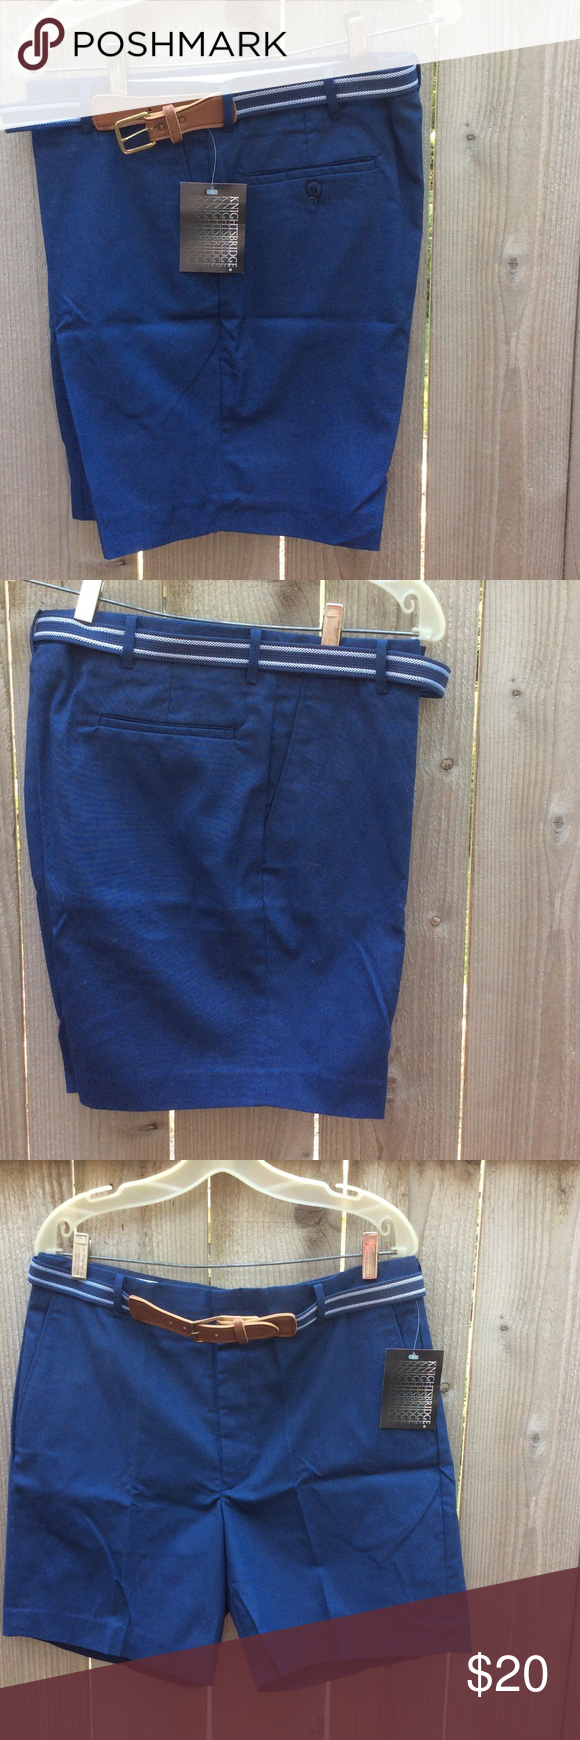 Men's Knightsbridge Dress Shorts with Belt New with tags shorts in dark blue. 60% cotton, 40 polyester. Waist size 36. Includes matching belt. Knightsbridge Shorts Flat Front